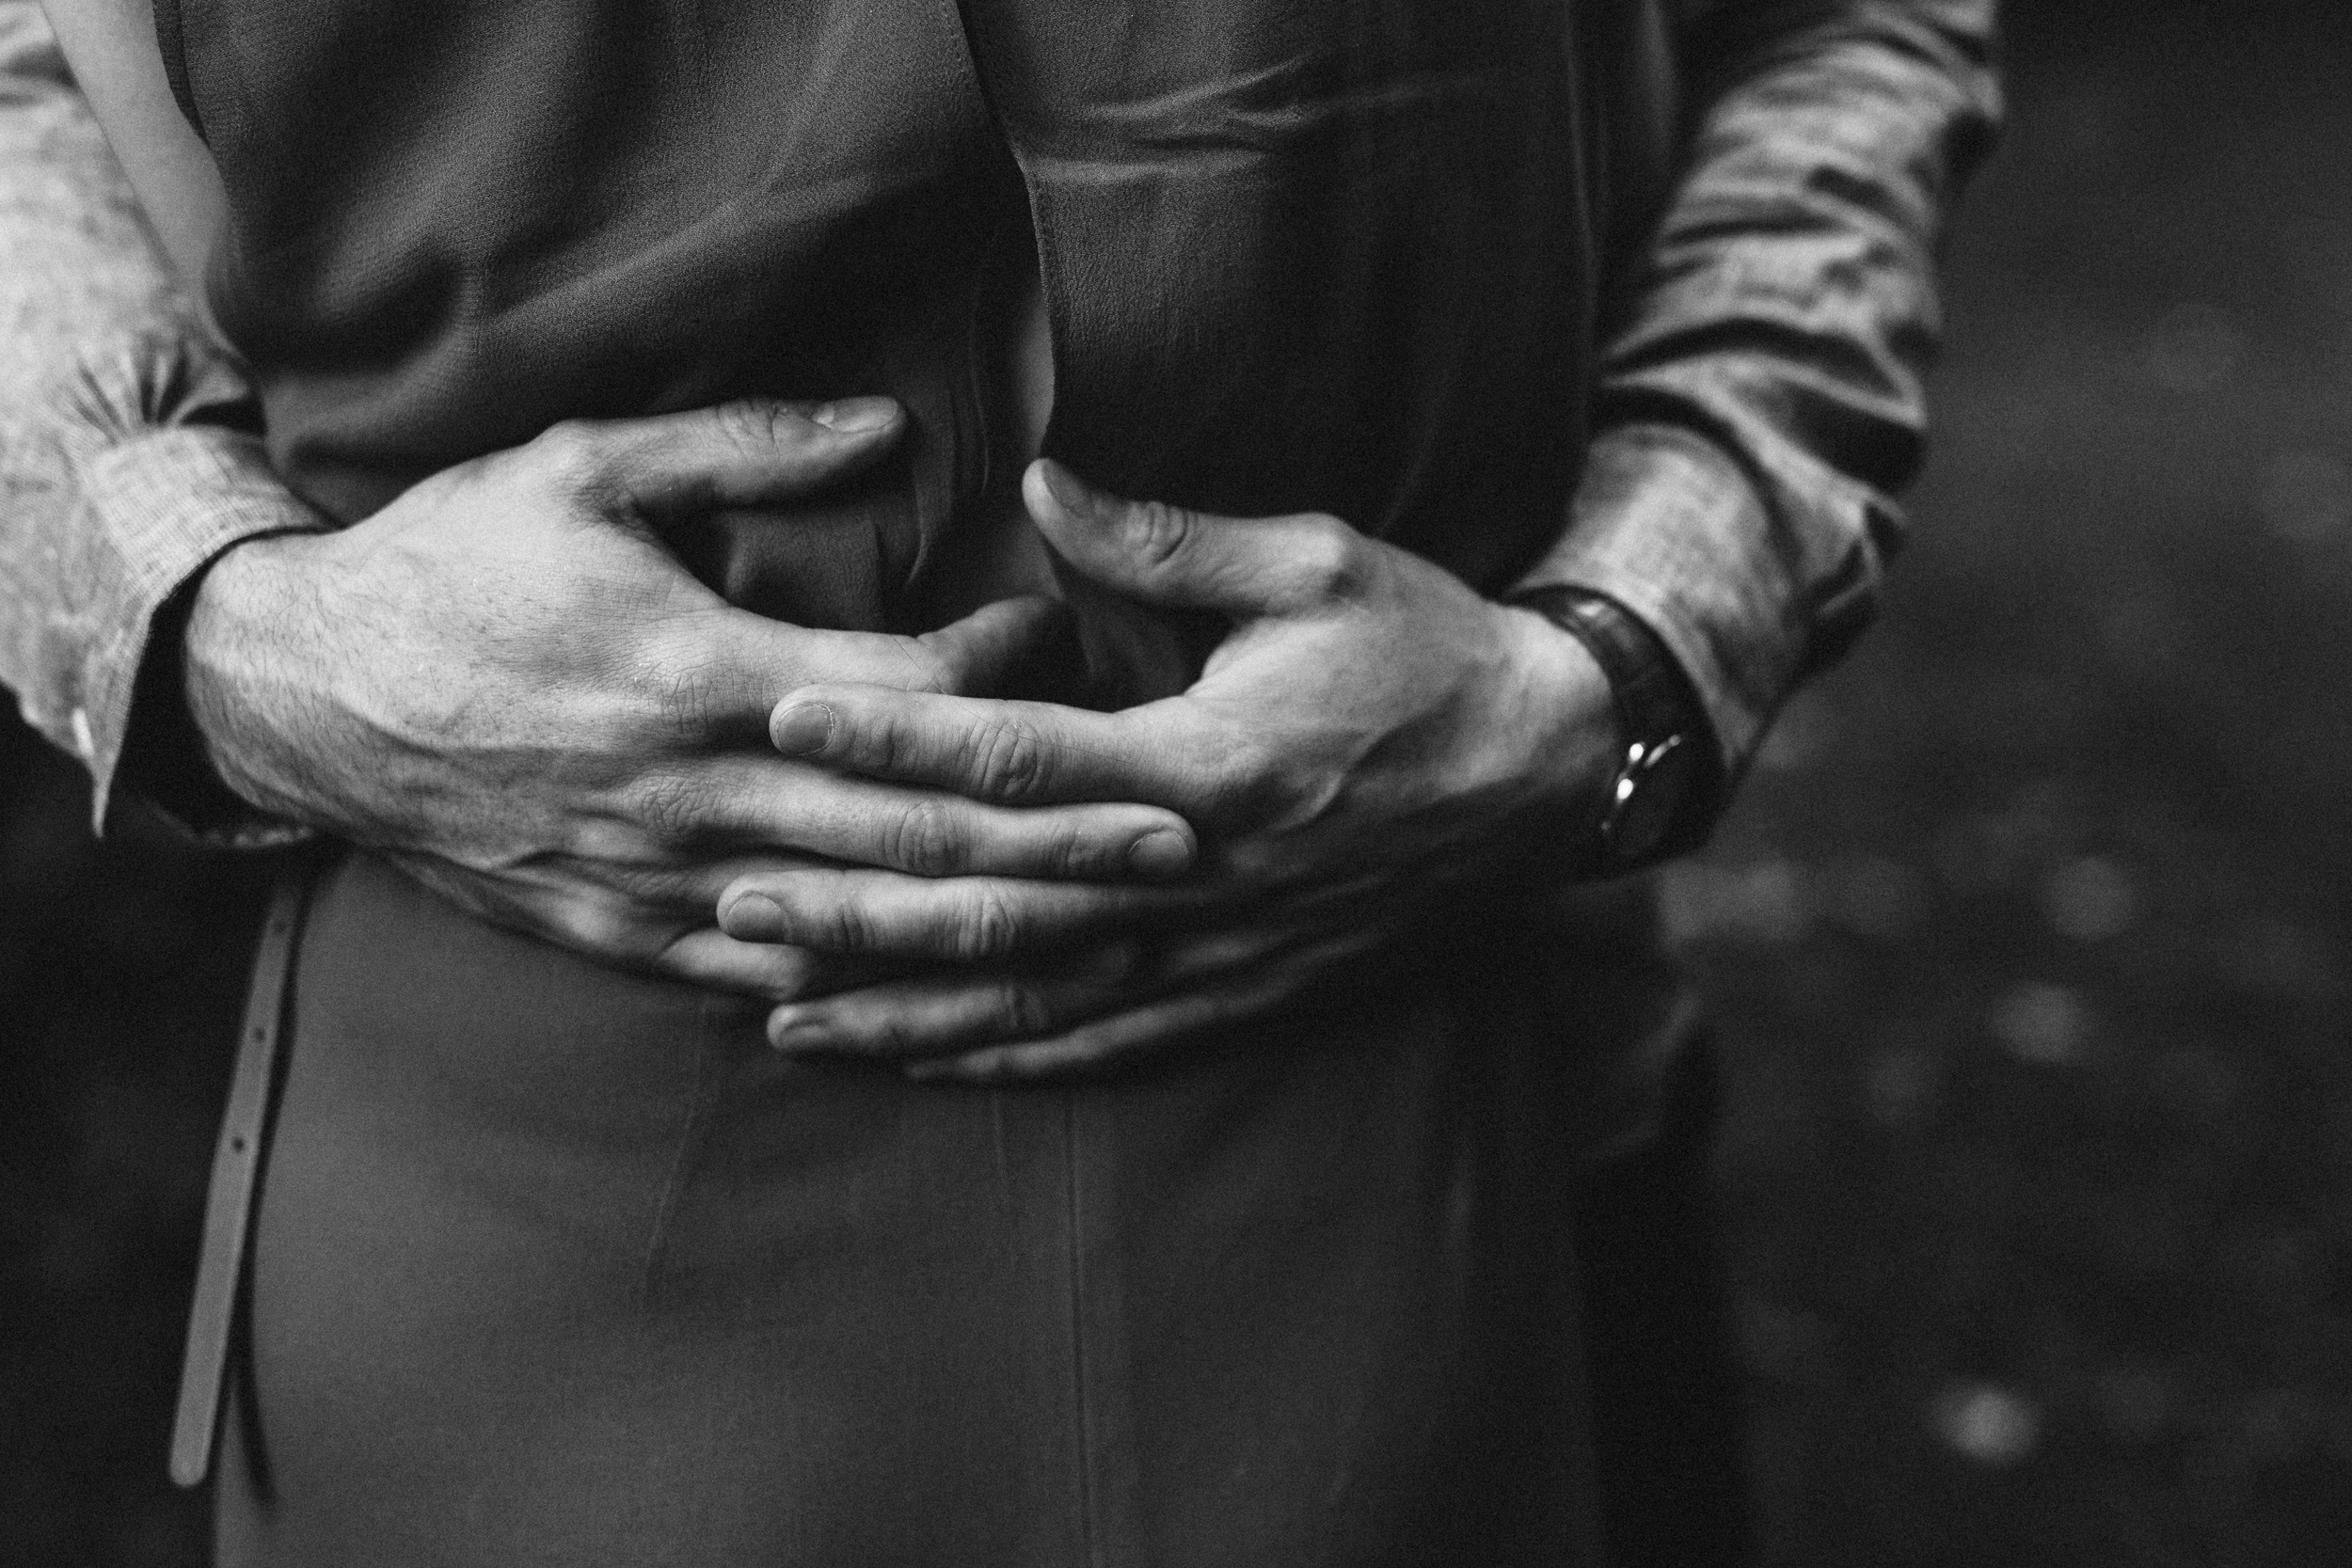 IMG_9619 LIGHTHOUSE PARK ENGAGEMENT PHOTOS VANCOUVER WEDDING PHOTOGRAPHER JENNIFER PICARD PHOTOGRAPHY.jpg